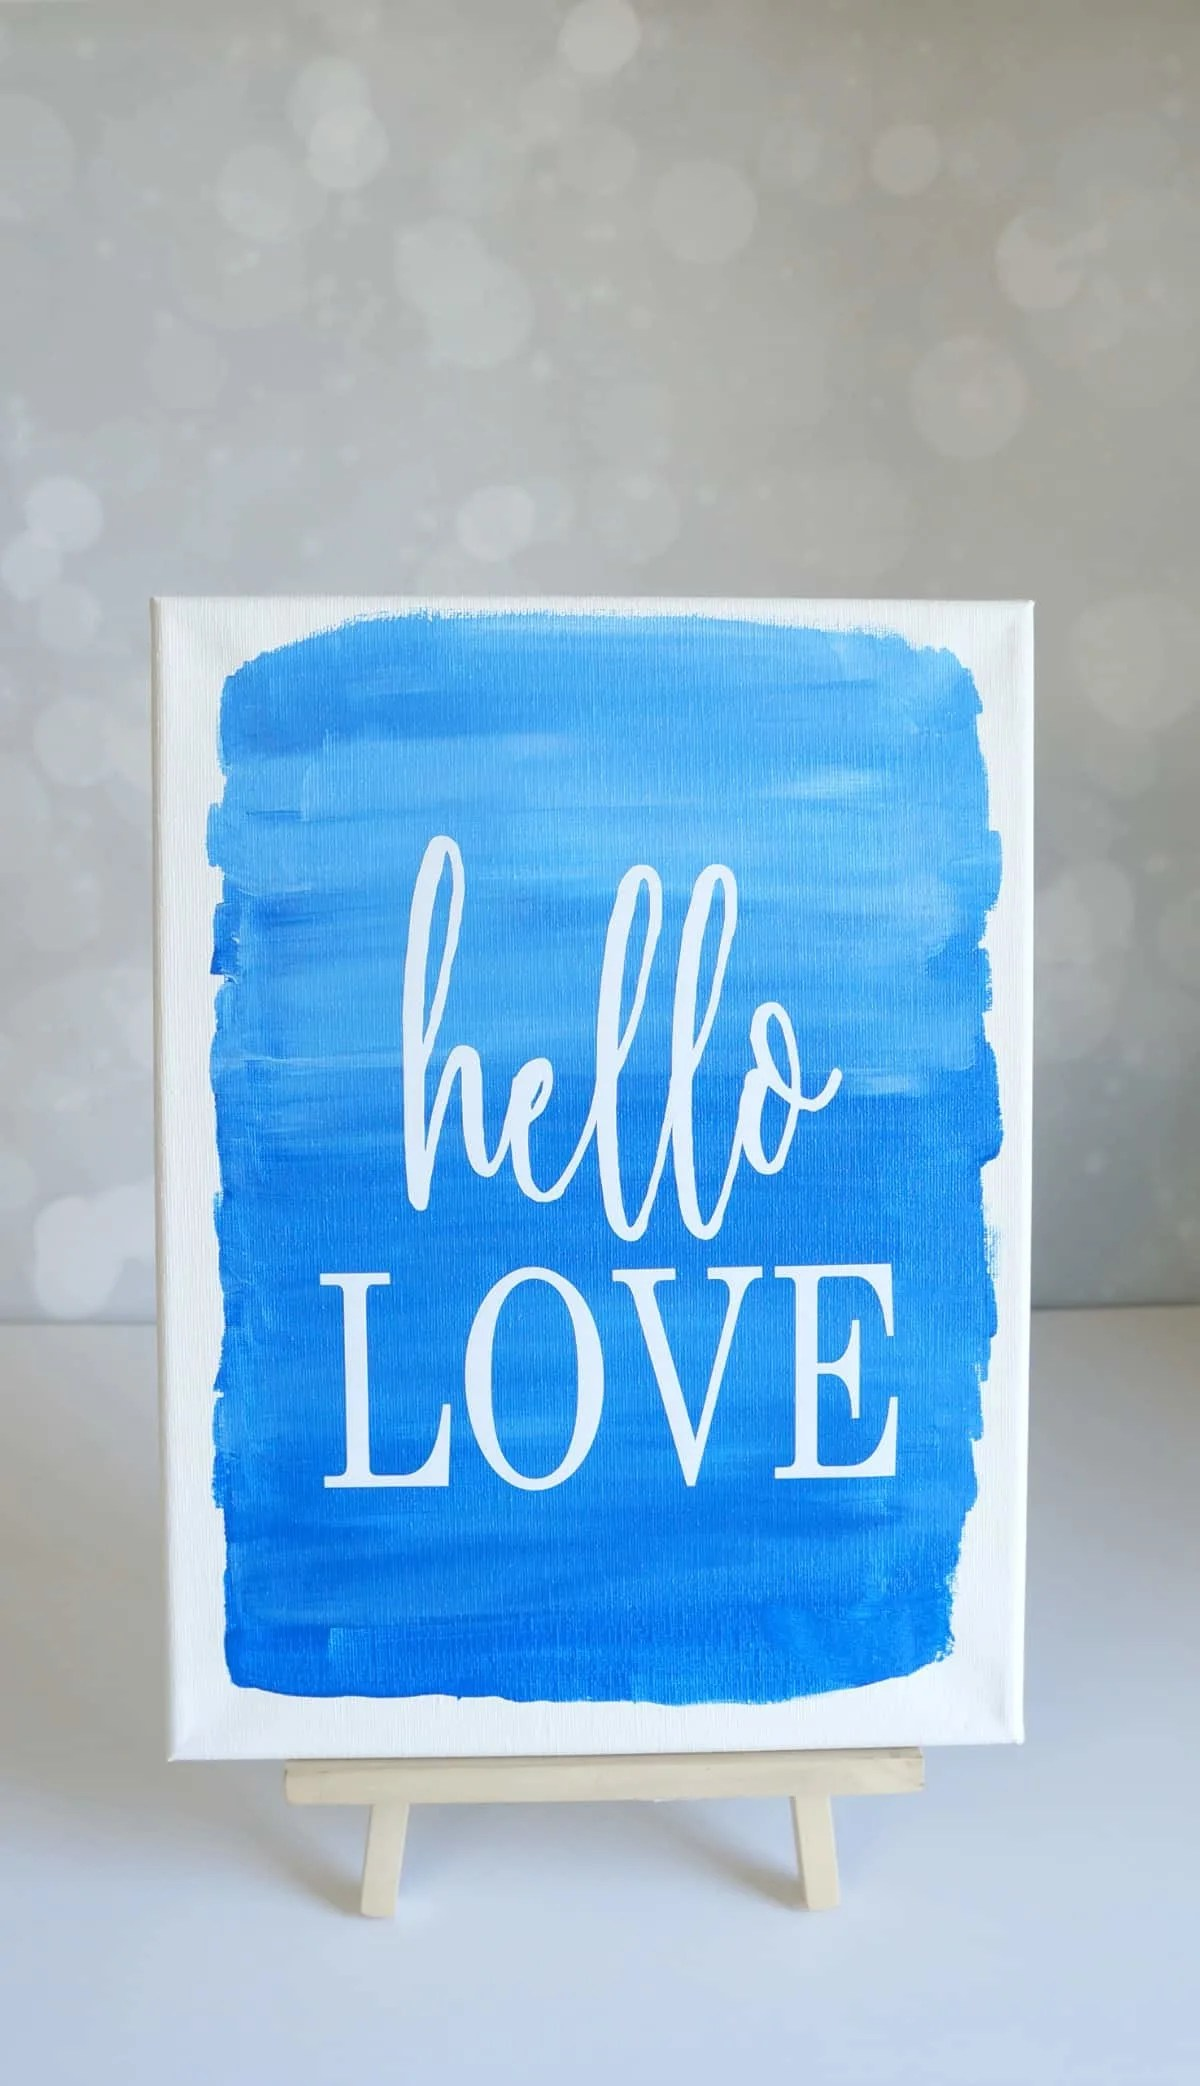 Ombre Canvas Painting Ideas : ombre, canvas, painting, ideas, Apply, Vinyl, Canvas, Creative, Ramblings